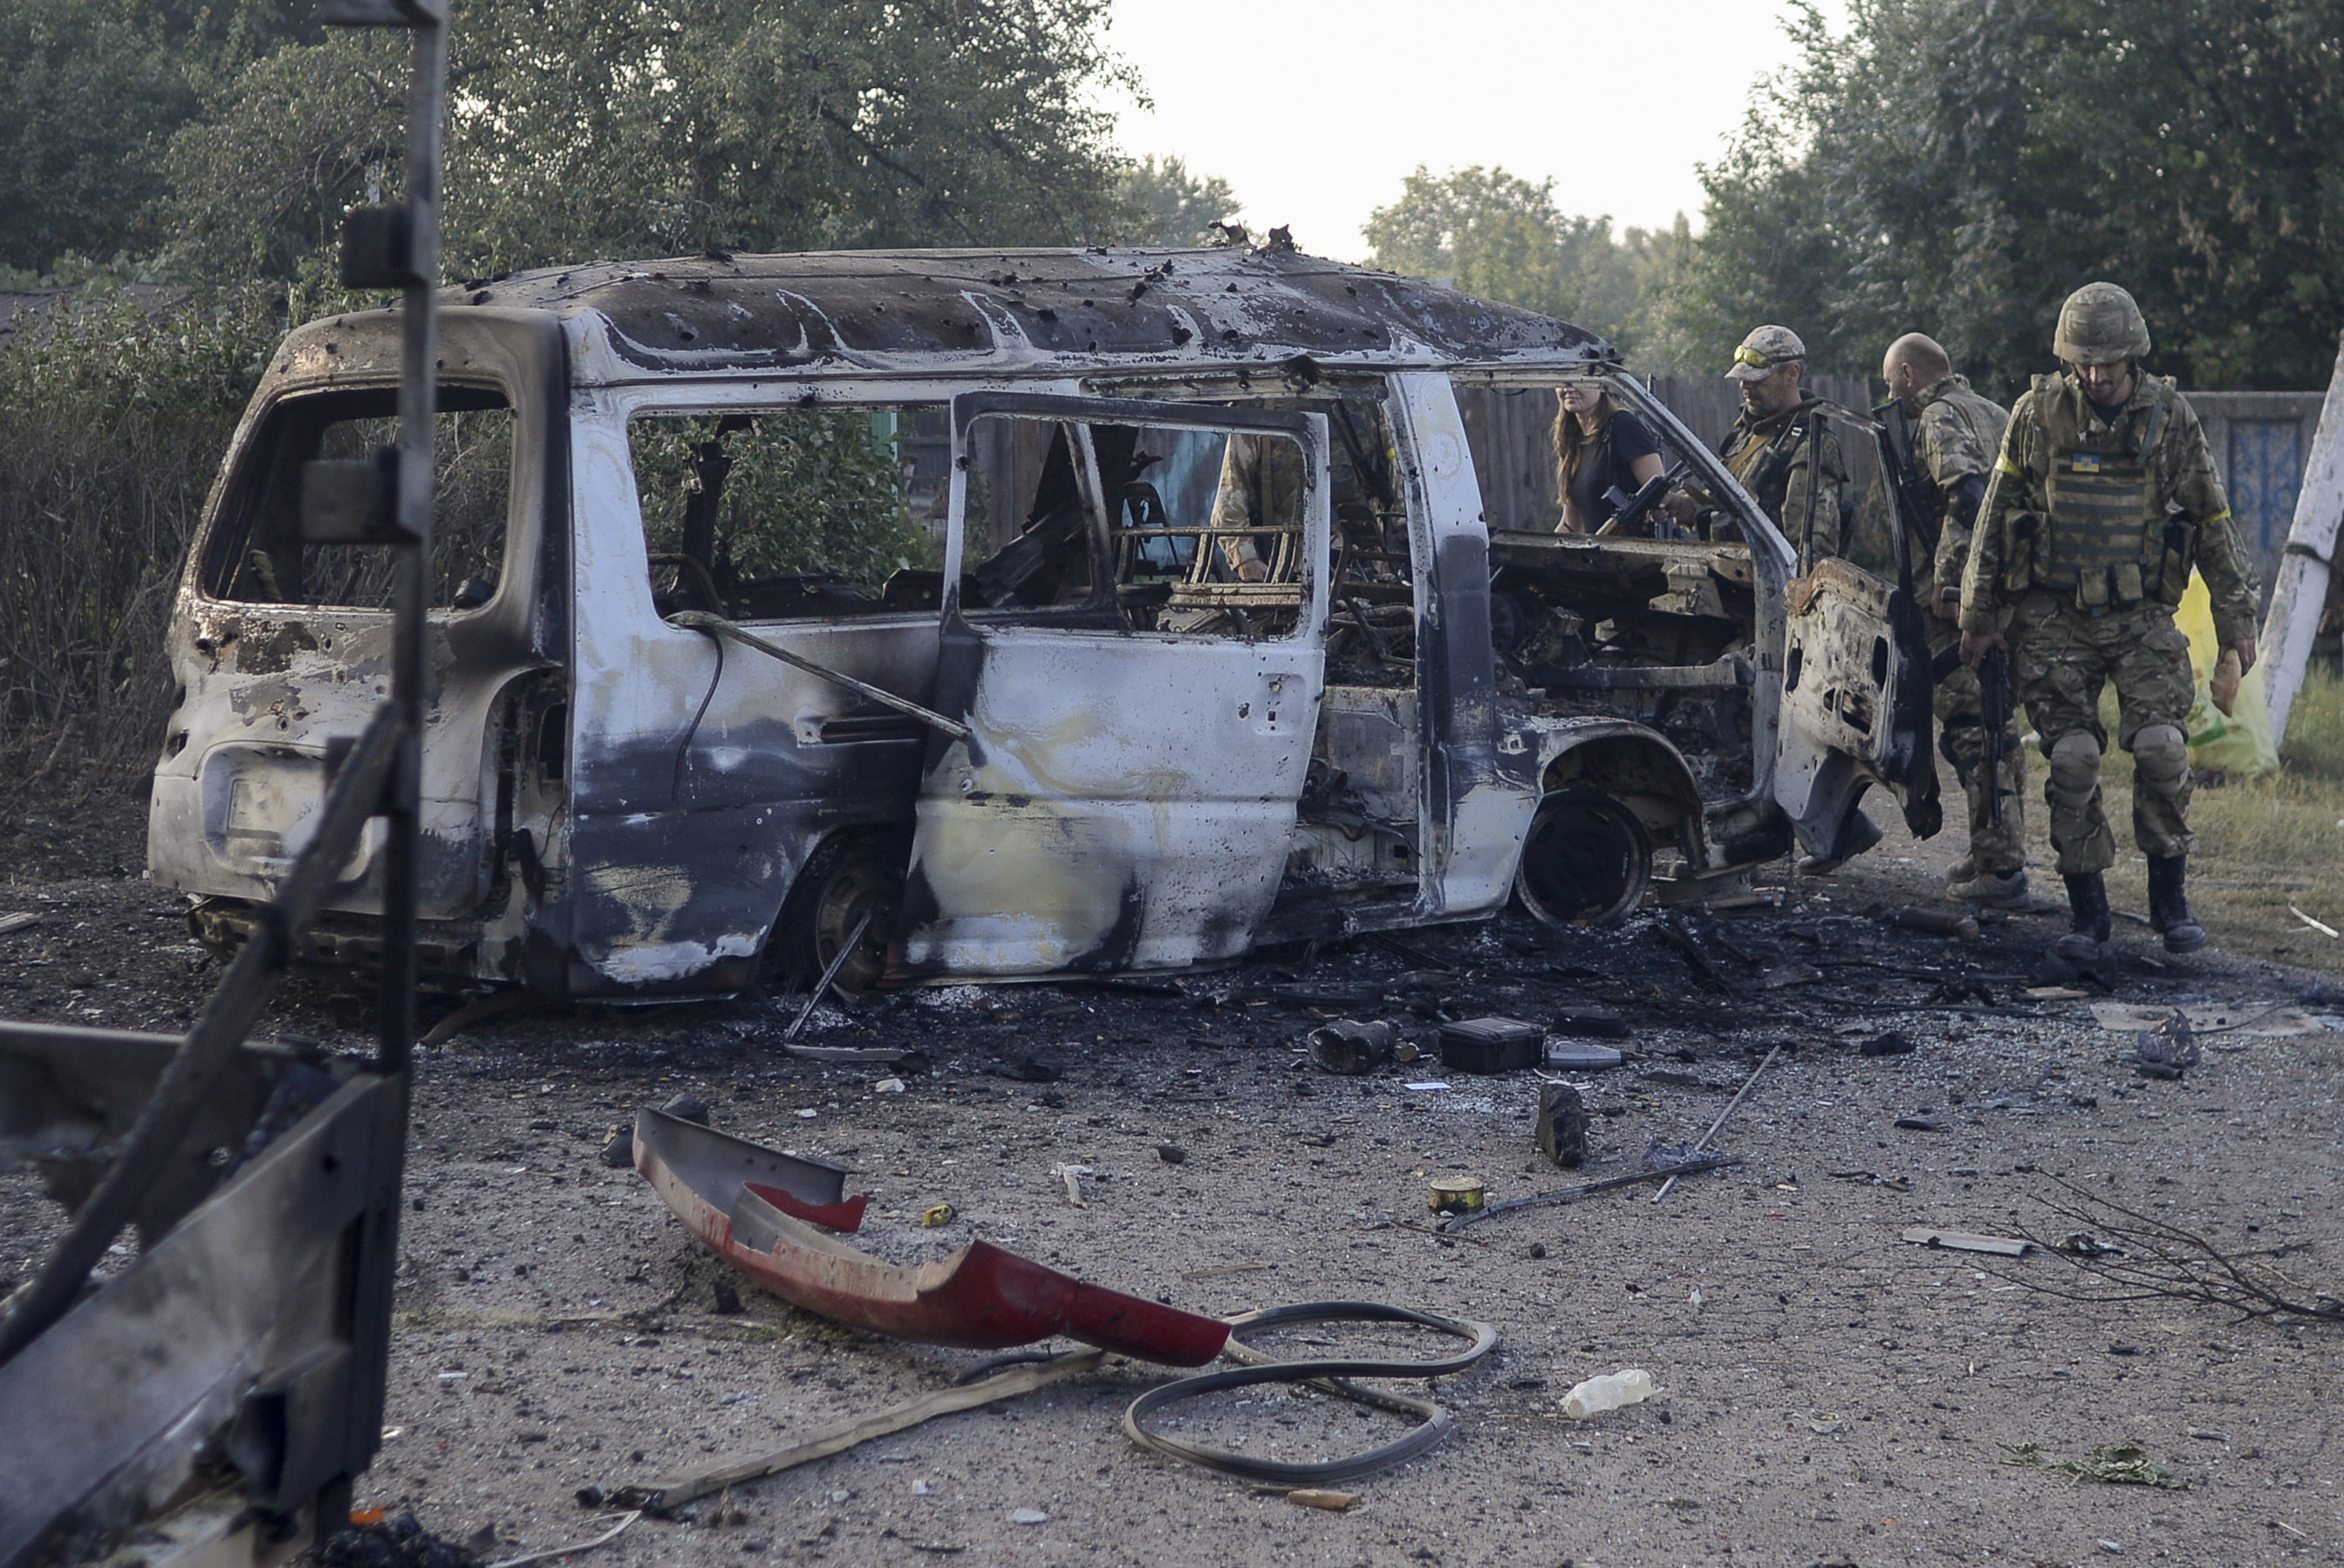 Soldiers of Ukraine's Donbas battalion inspect their unit's bus, which was destroyed in fighting, in the eastern Ukrainian town of Ilovaisk on August 24, 2014.